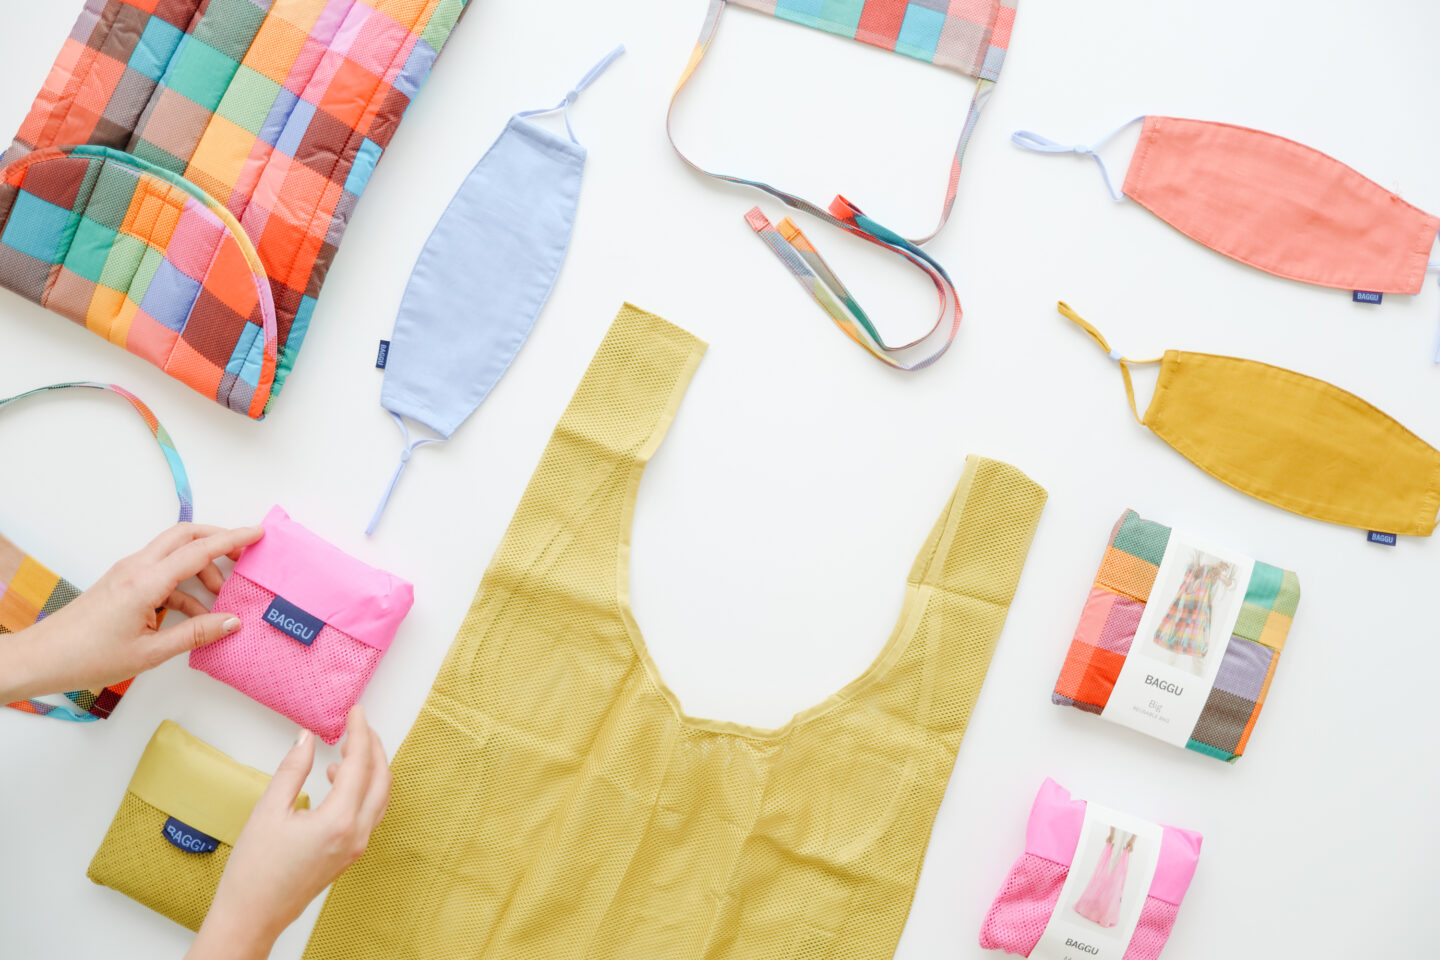 Baggu colorful bags and fabric masks collection